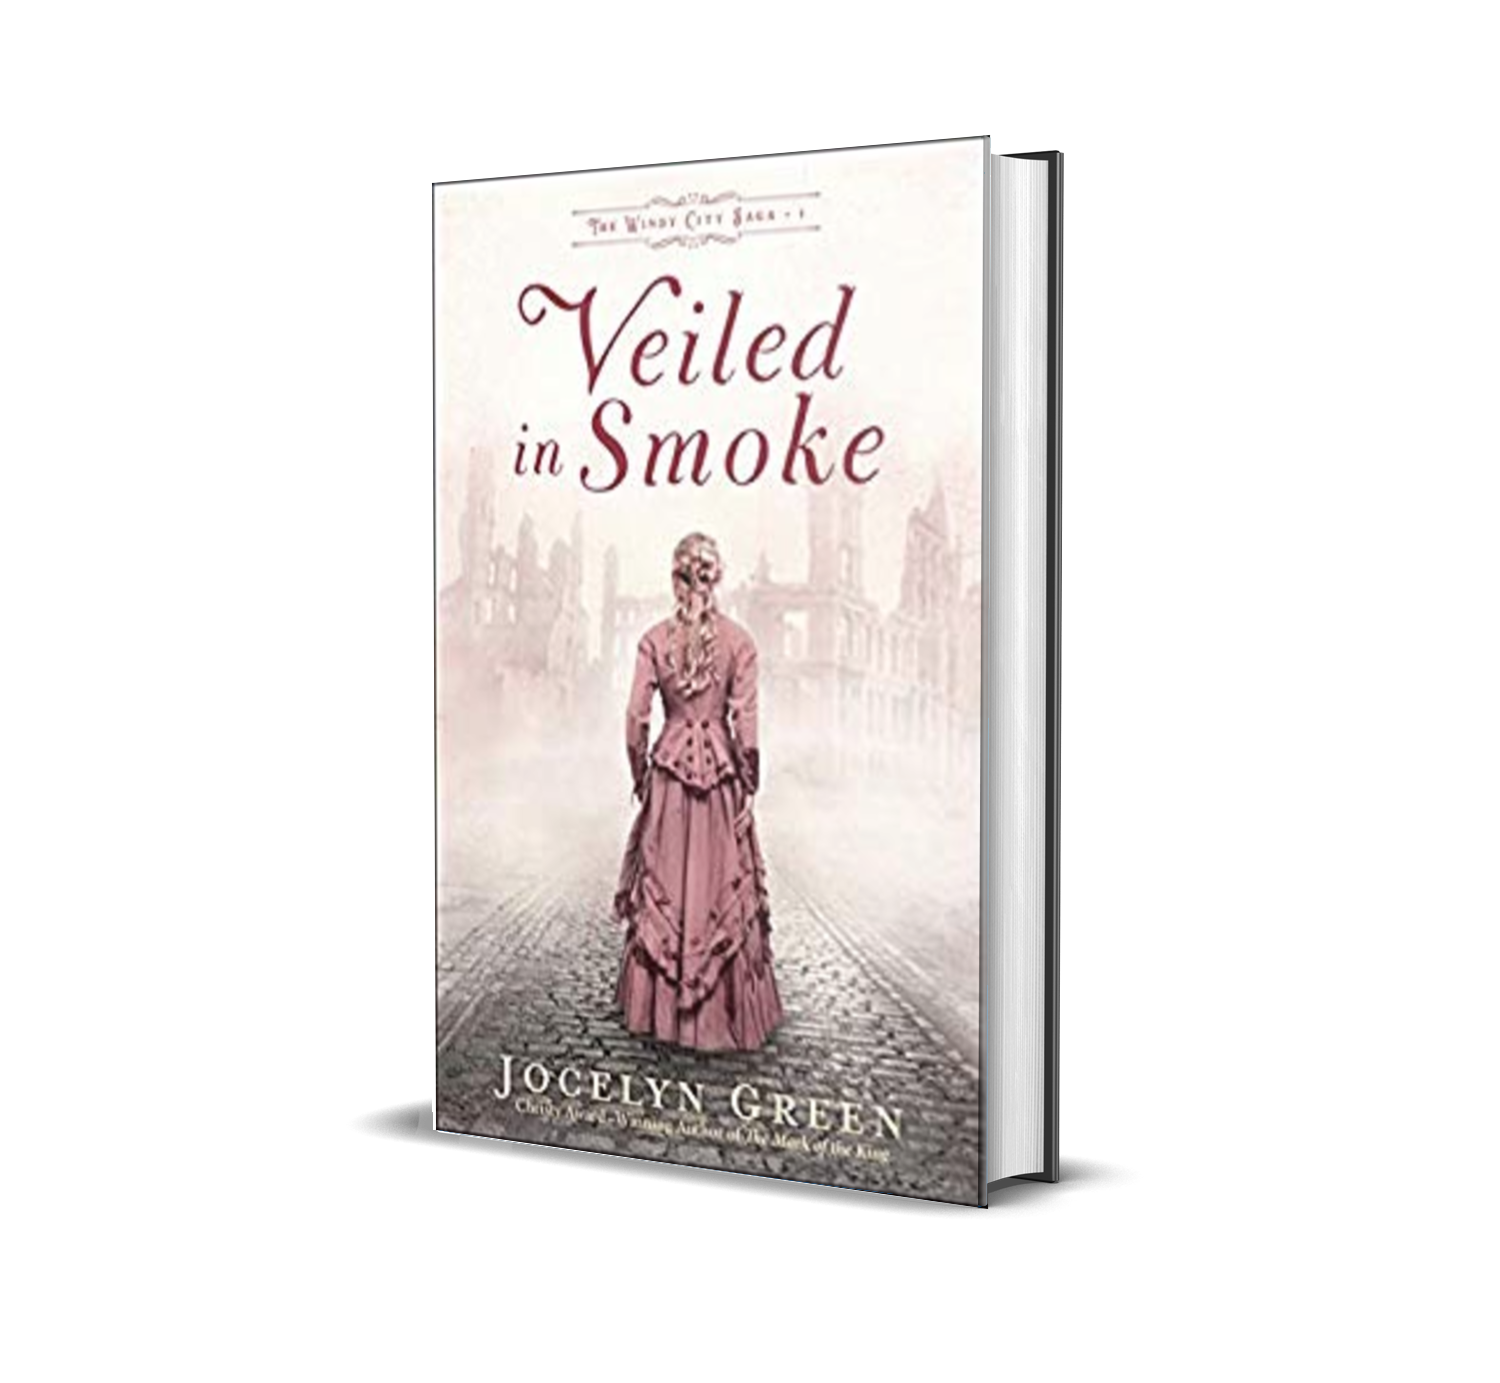 Veiled in Smoke by Jocelyn Green